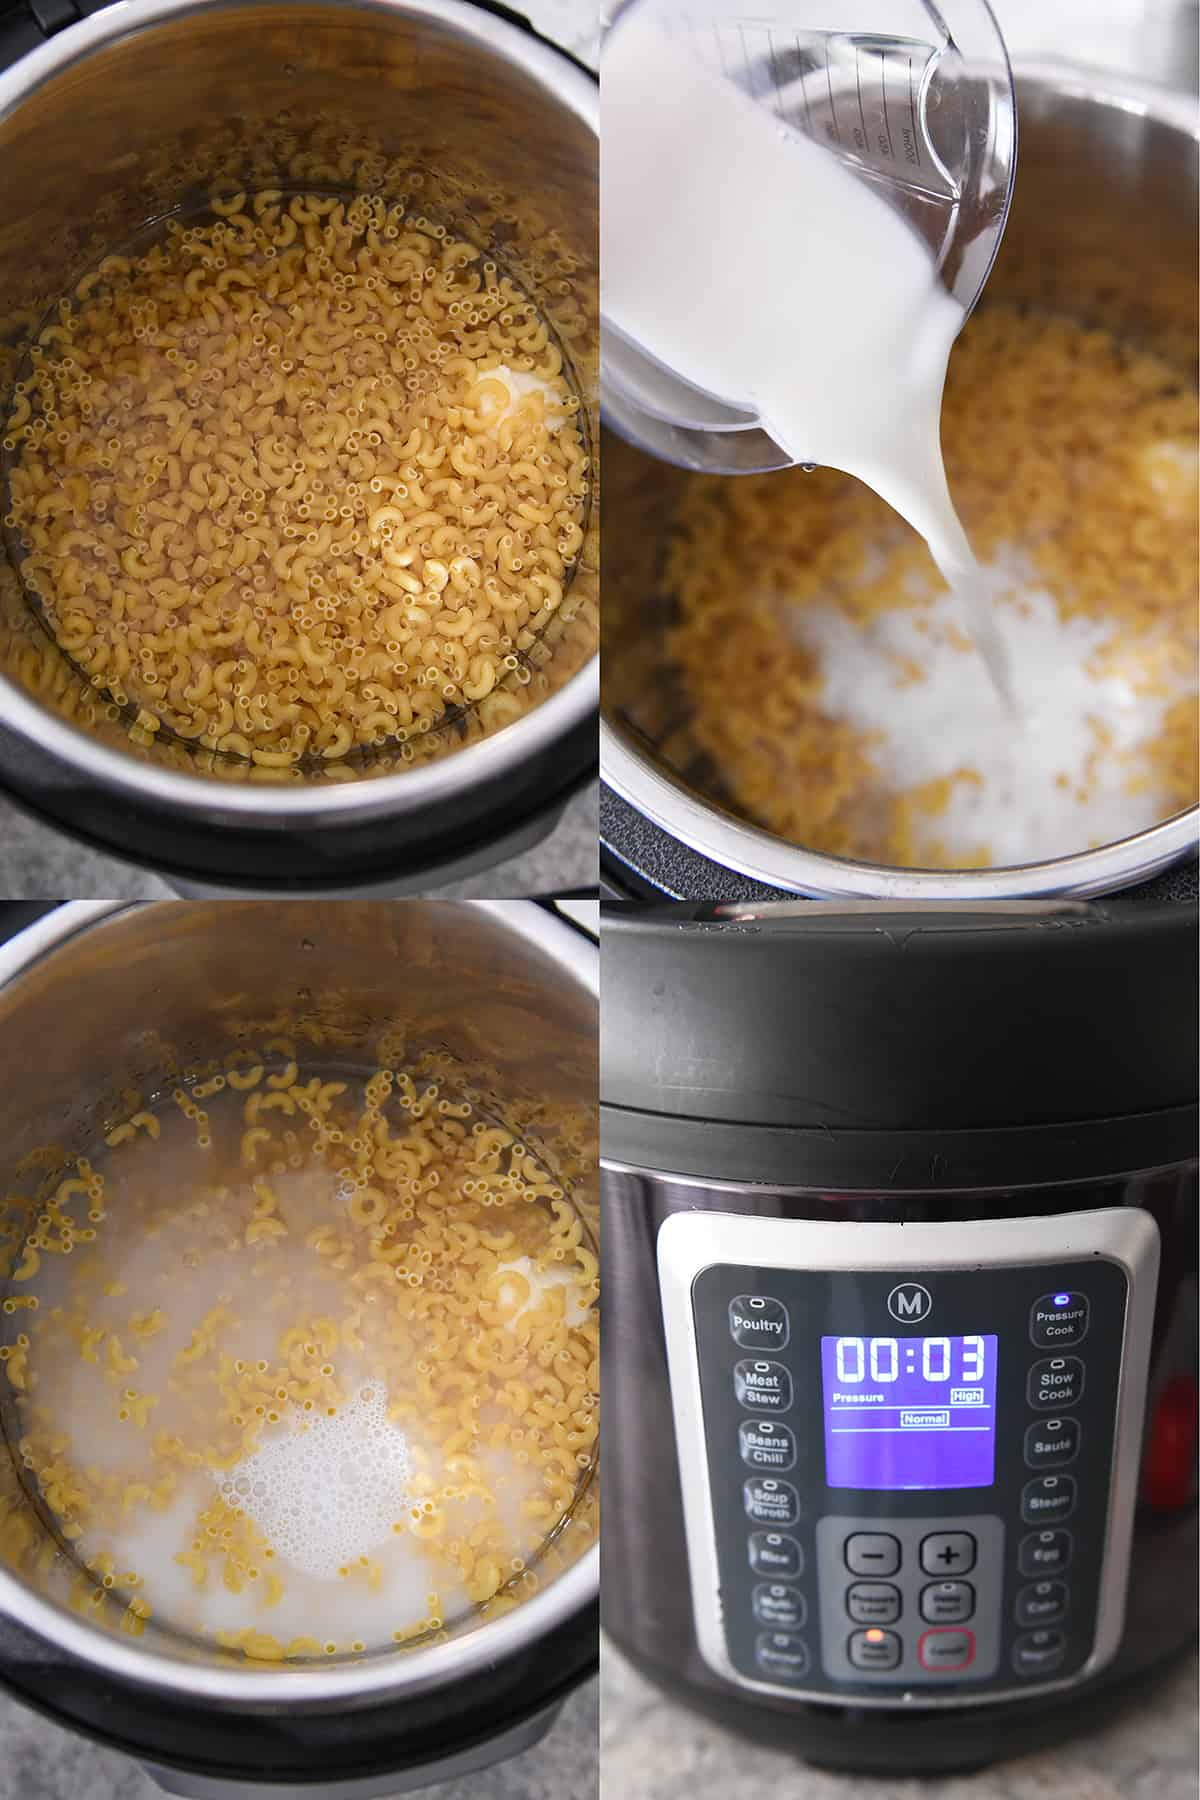 adding milk to pressure cooker with macaroni and setting cook time for three minutes